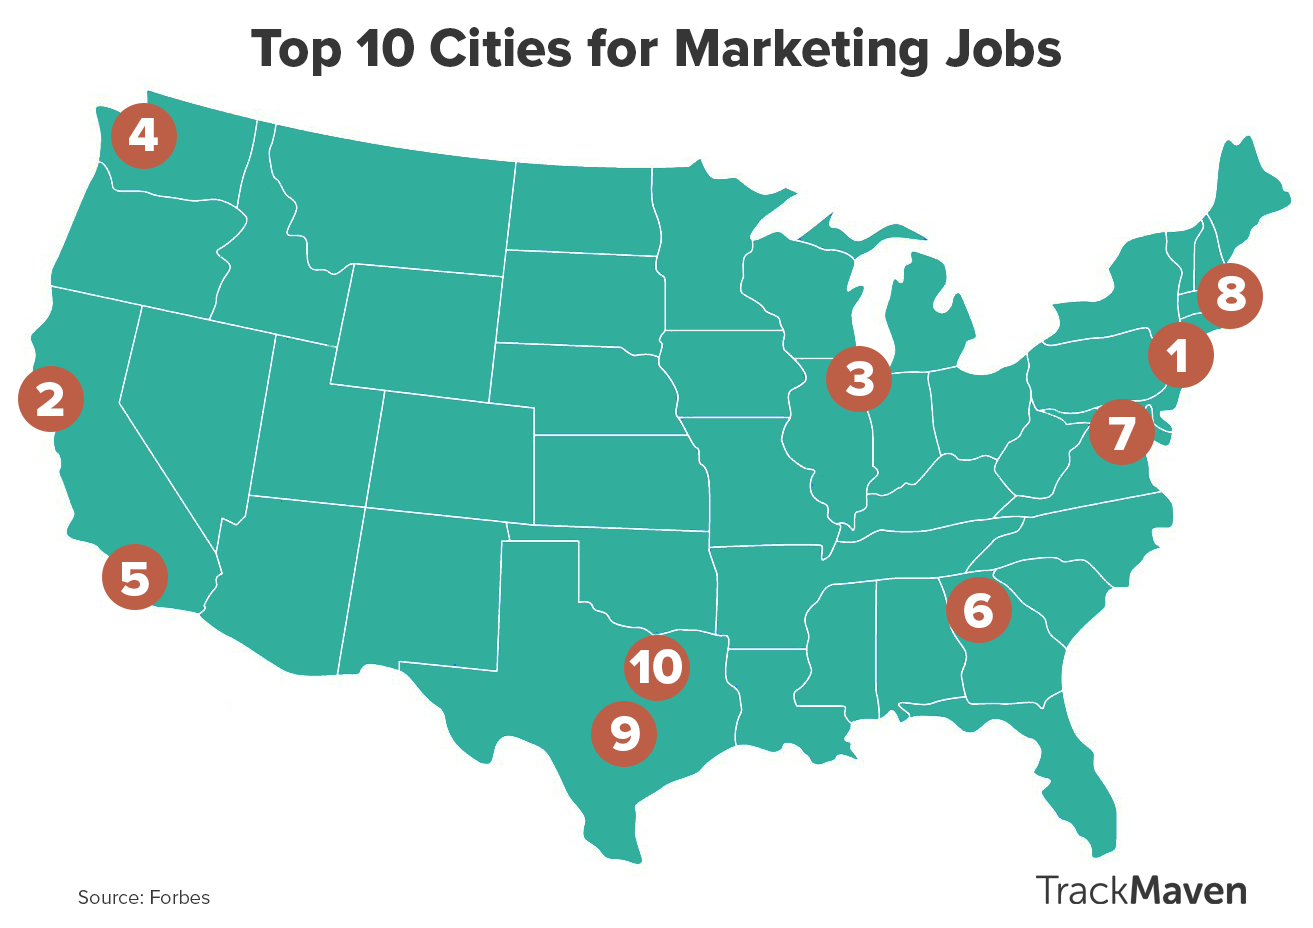 Marketing careers guide -- top 10 cities for marketing jobs (Forbes).